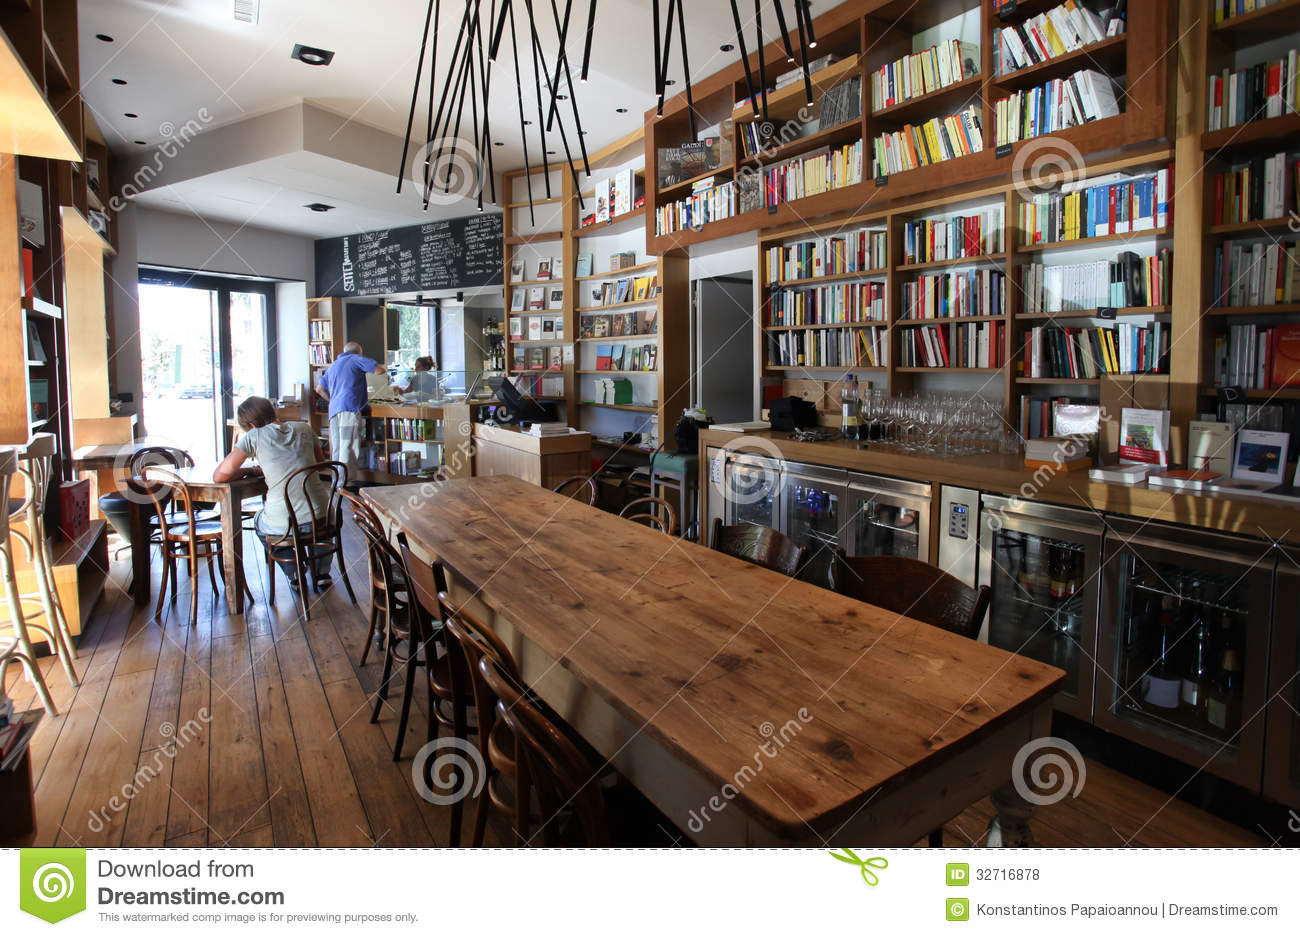 Coffee Bar And Bookcase In Rome Editorial Stock Photo - Image: 32716878